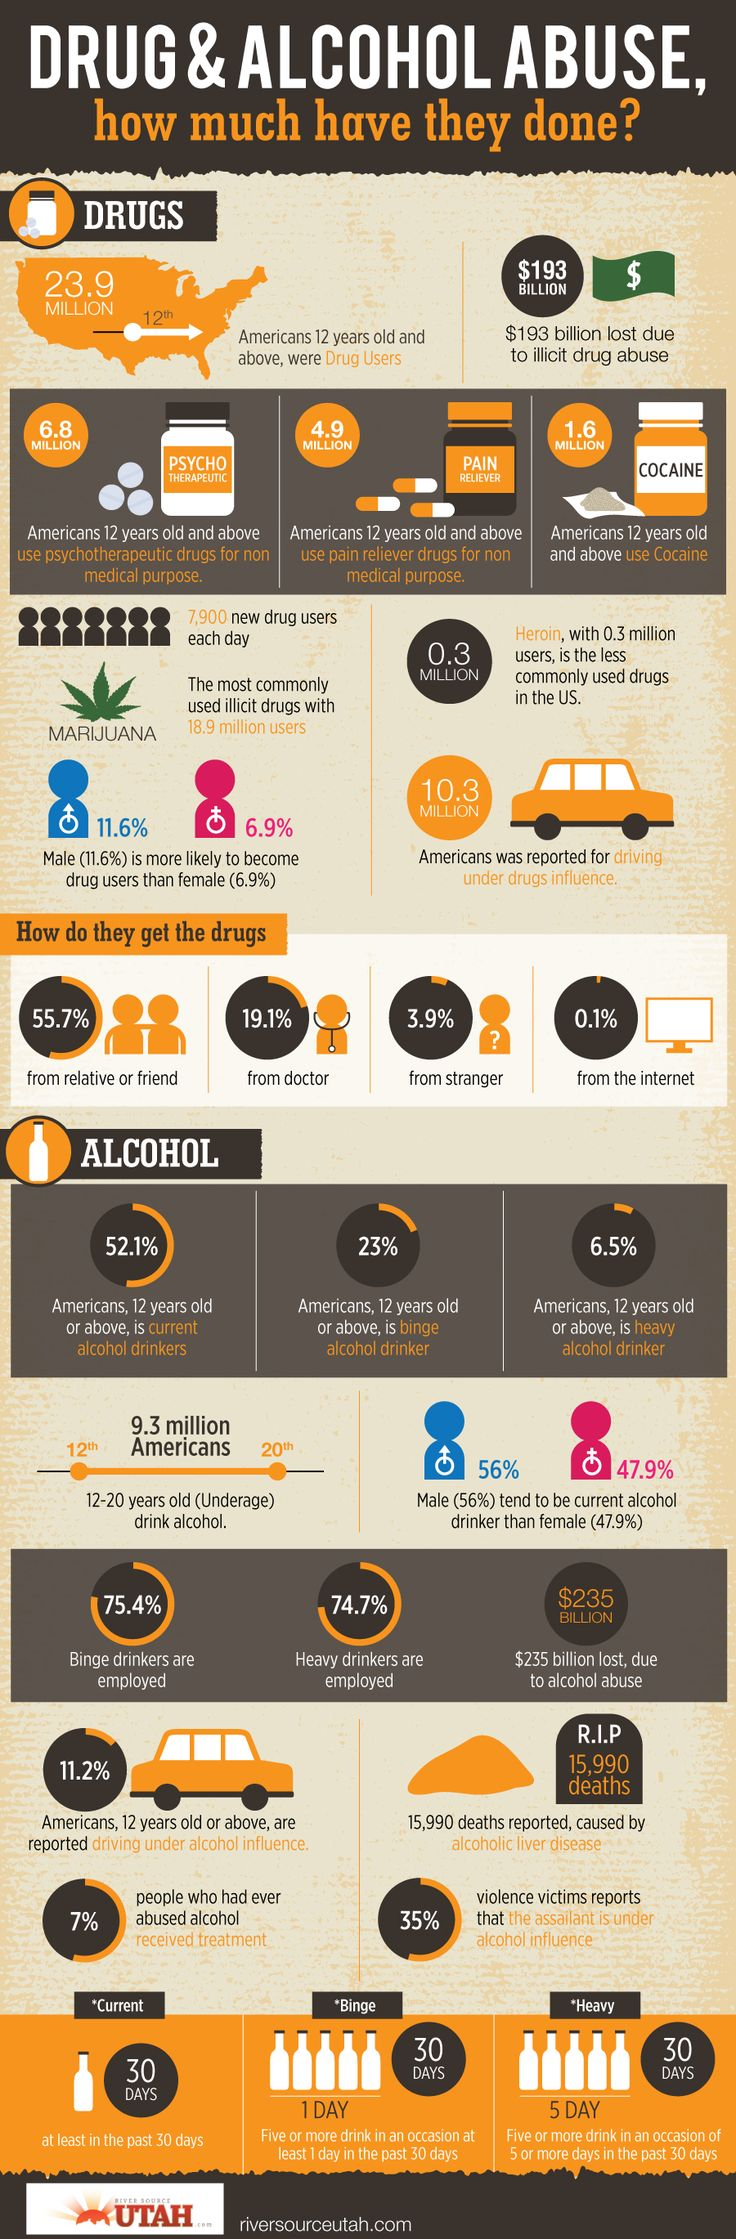 Drug & Alcohol Abuse, How Much Have They Done?  #Infographic #AlcoholAbuse #Drug